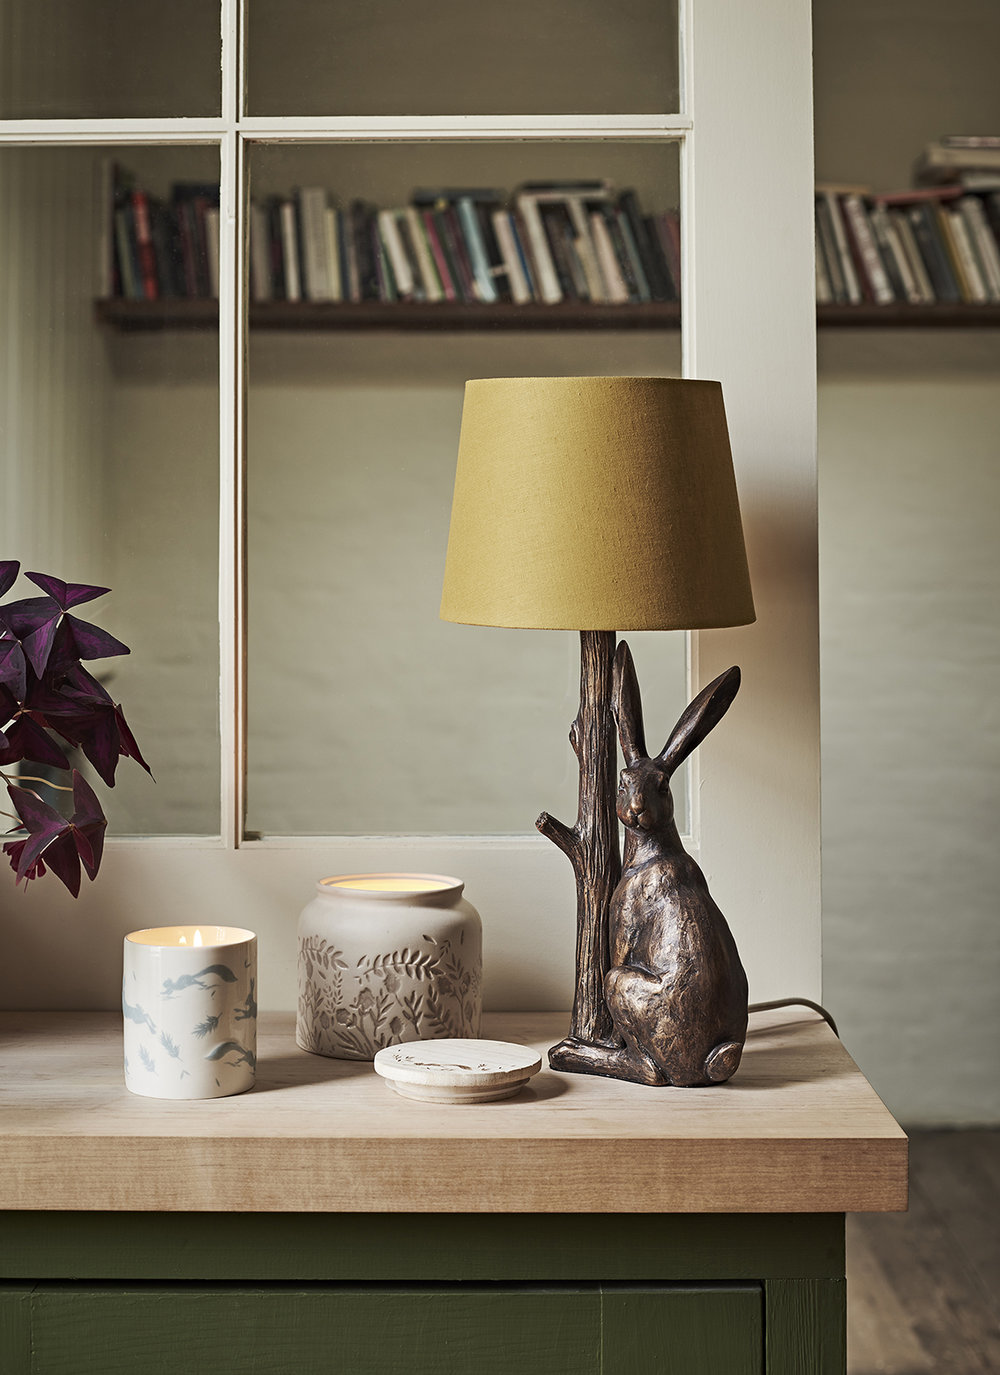 Lamp + Candles by sainsburys